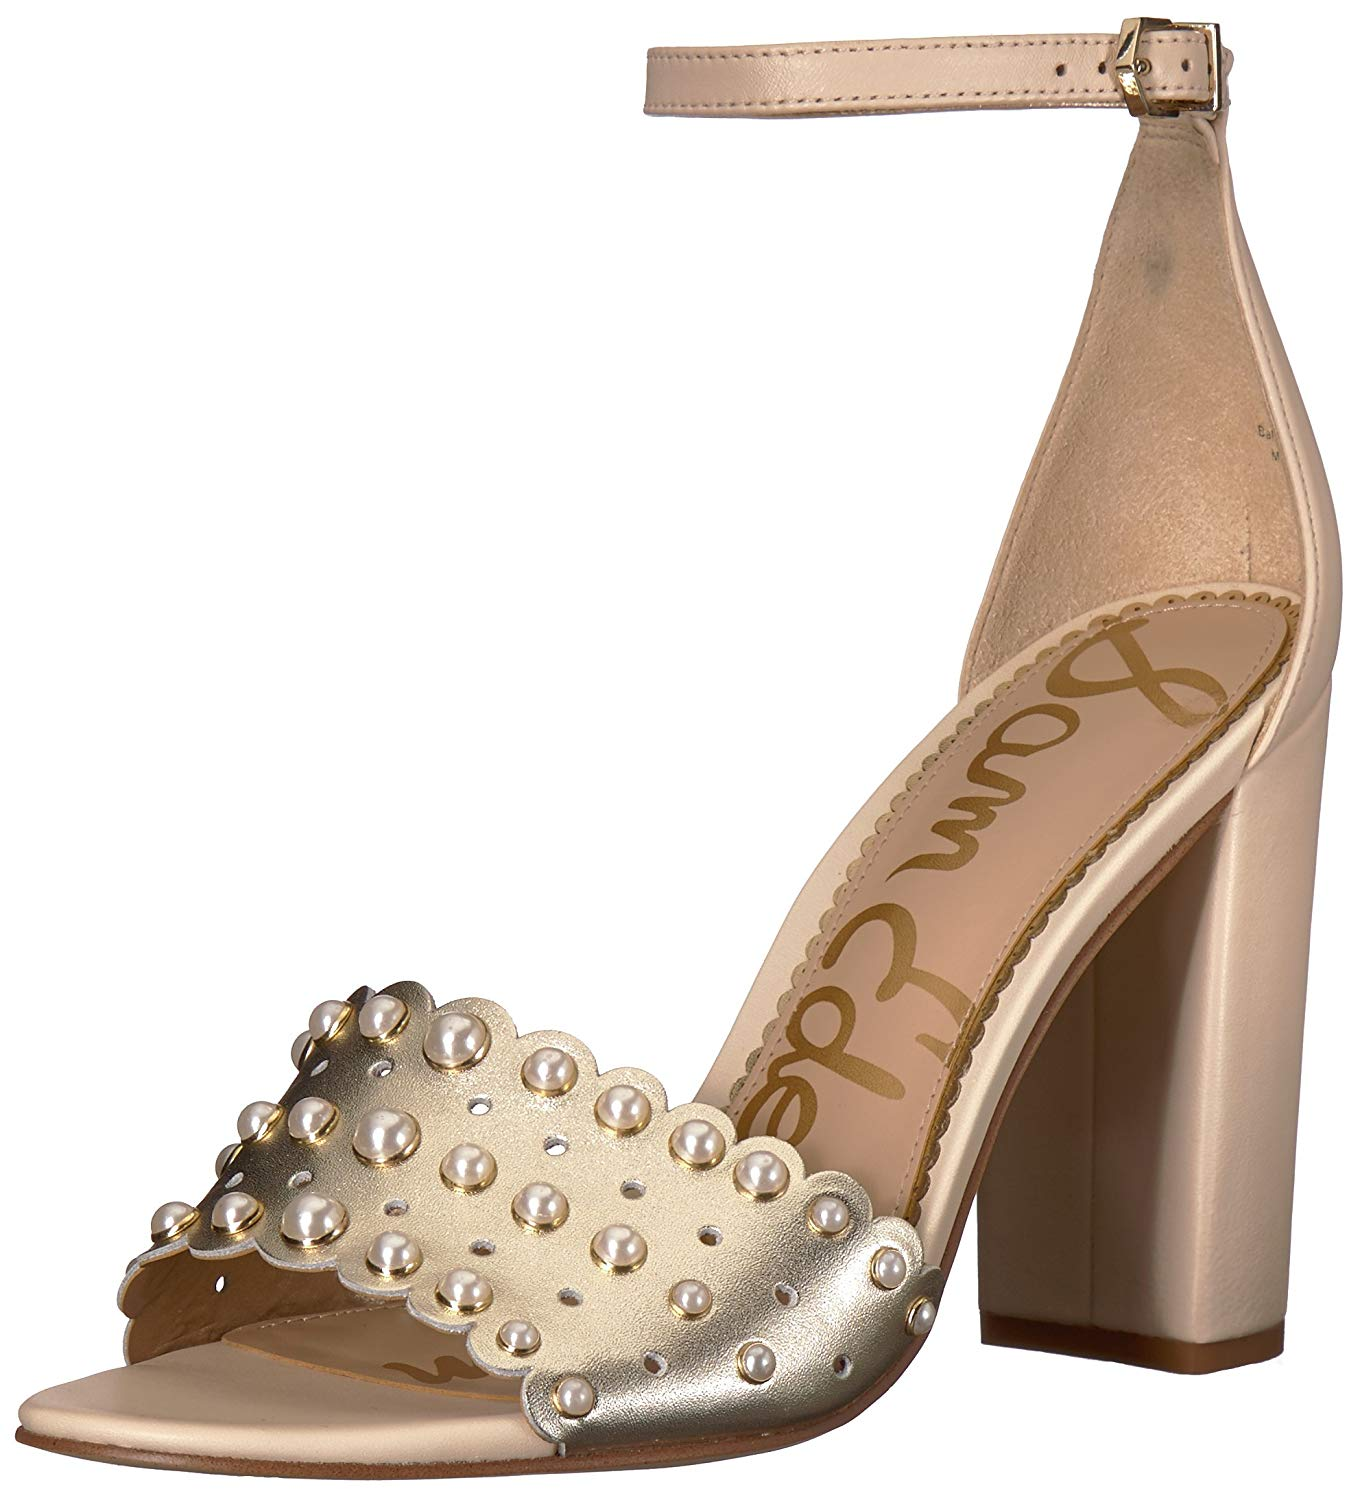 7a364bfb20d2a1 Sam Edelman Womens Yaria 2 Leather Open Toe Special